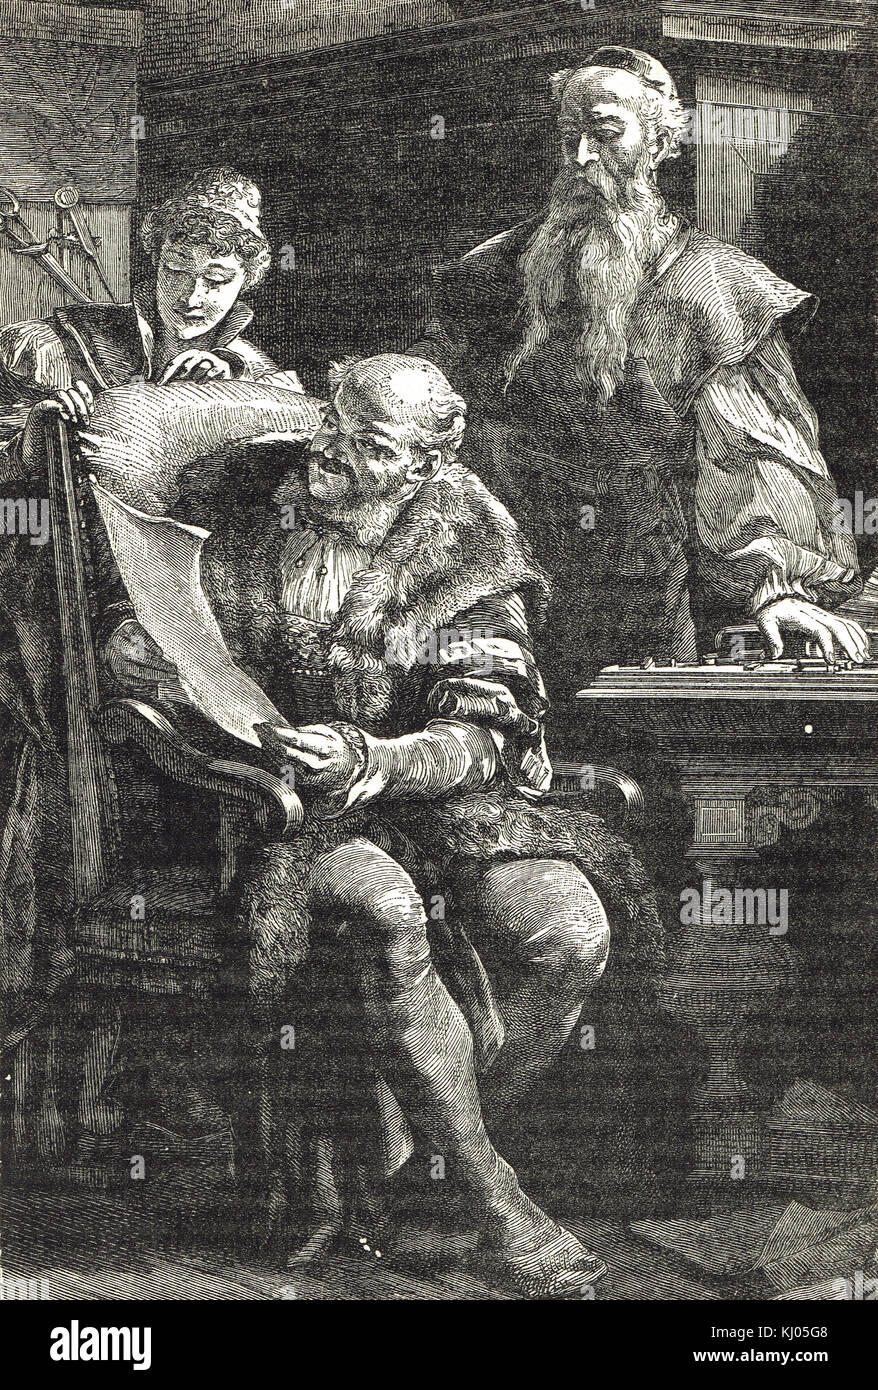 Gutenberg showing Fust (also spelt Faust) the first printed book - Stock Image